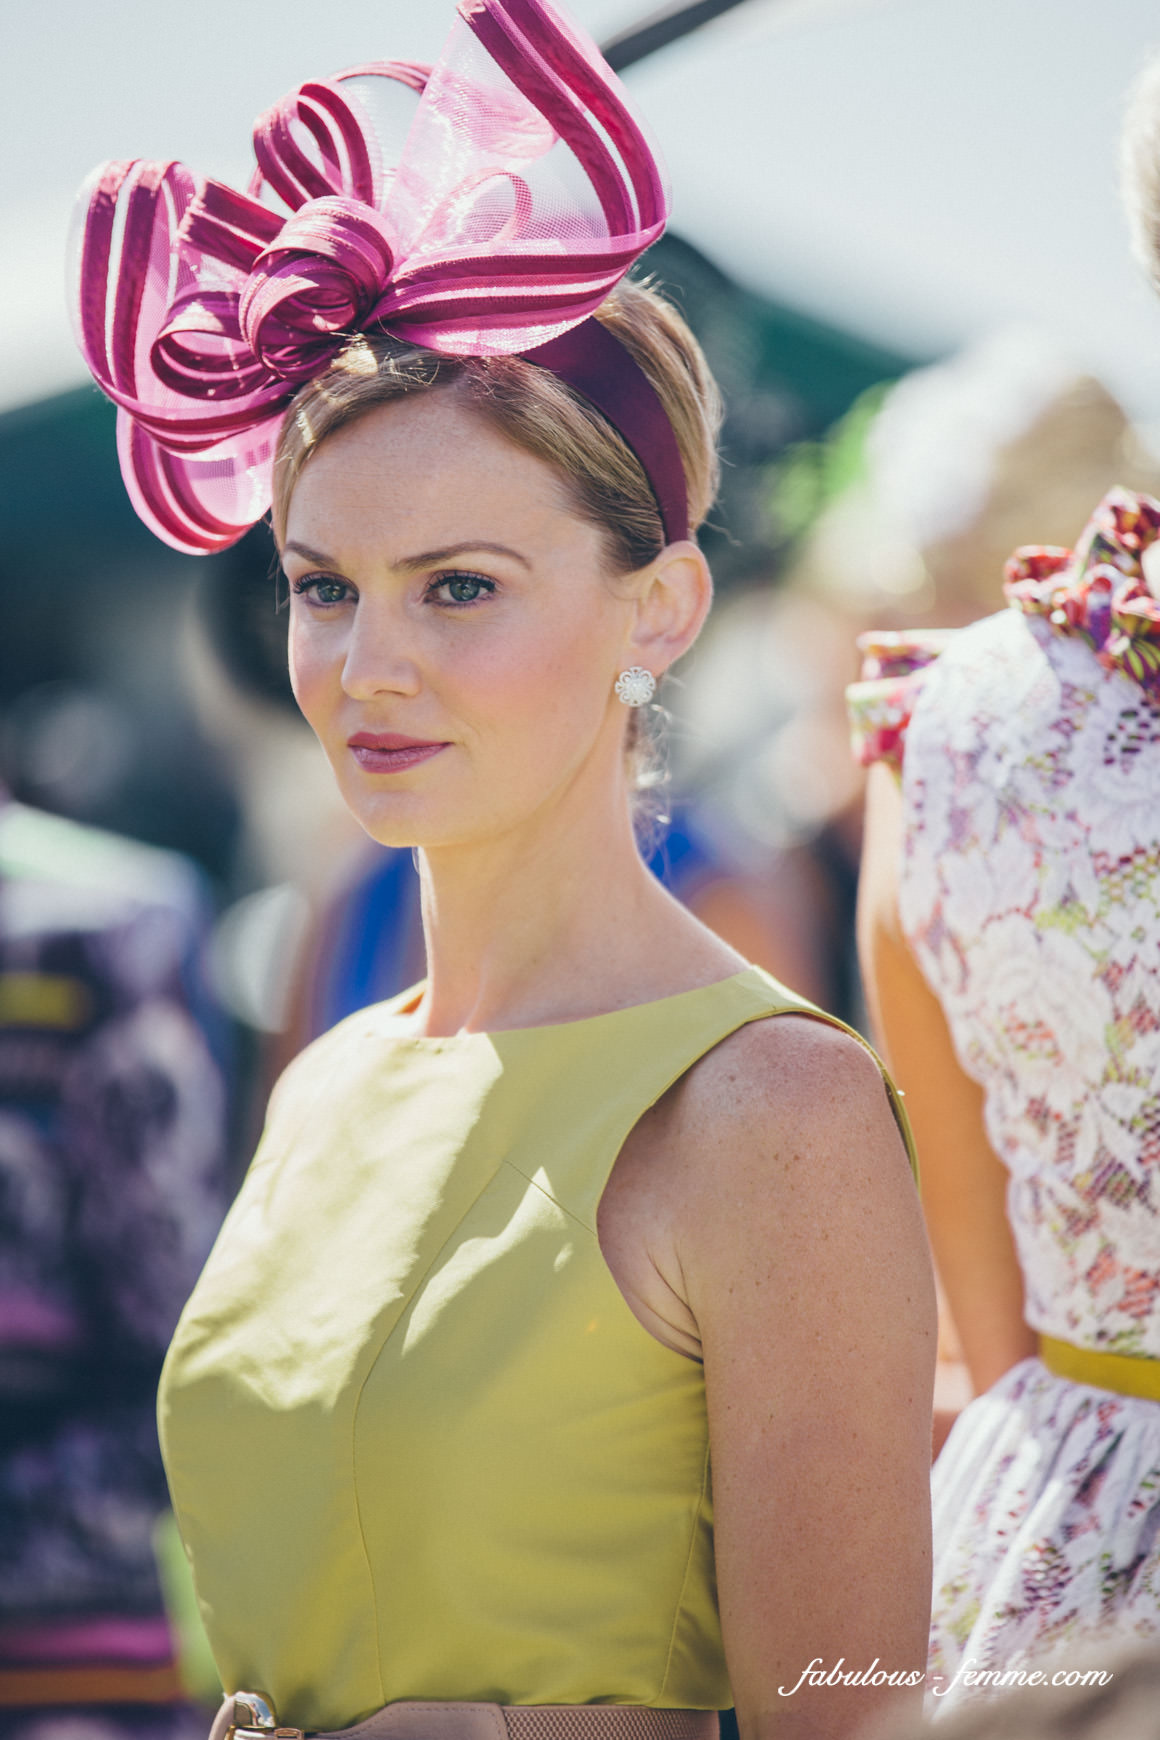 photos of spring fashion at melbourne cup, australia